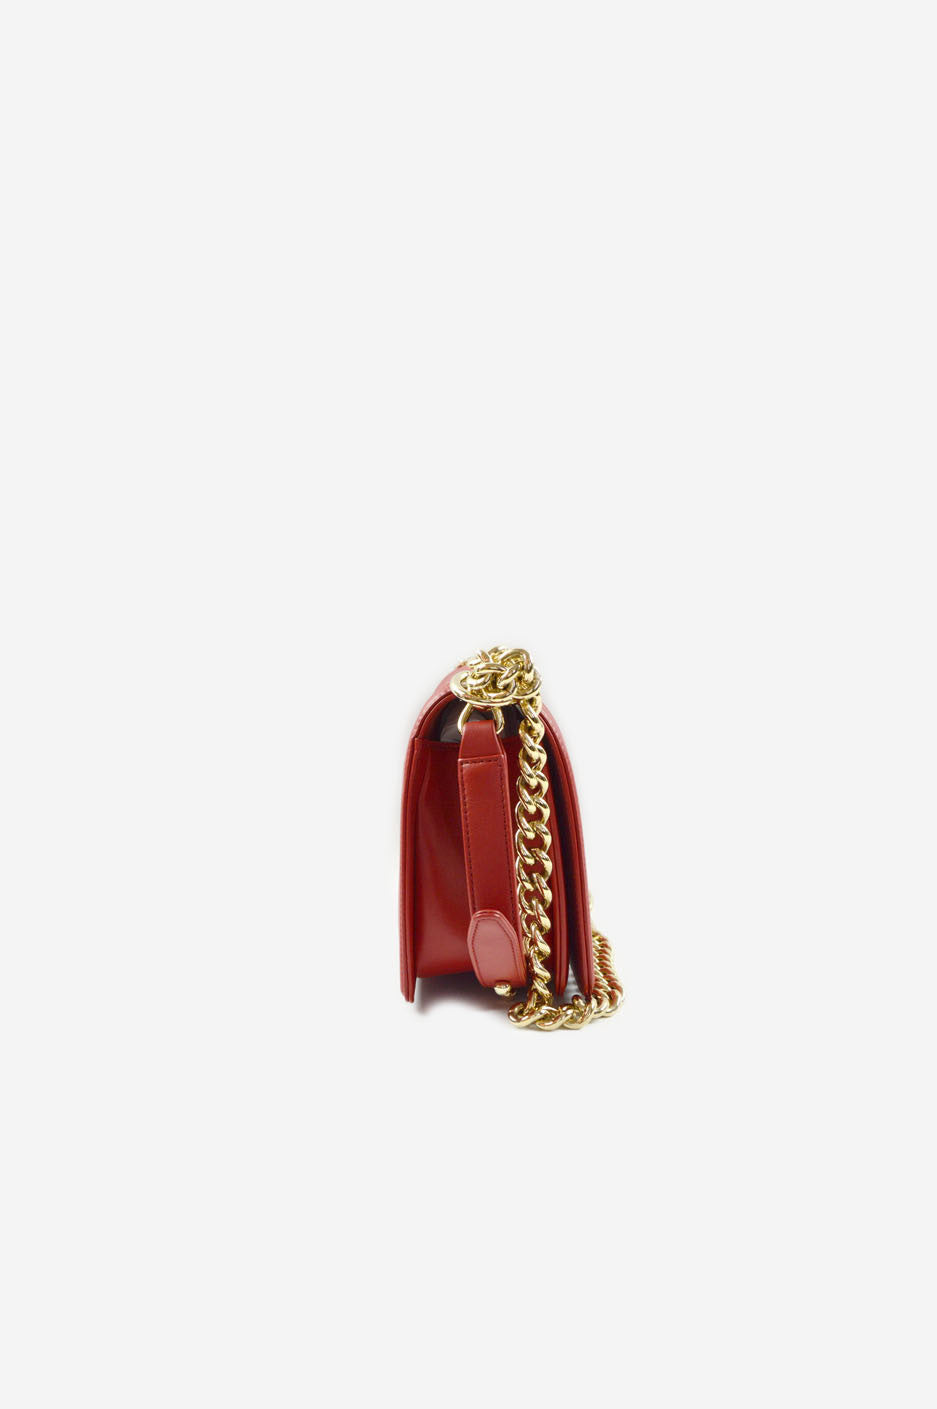 Red Lambskin Old Medium Chevron Boy Bag GHW